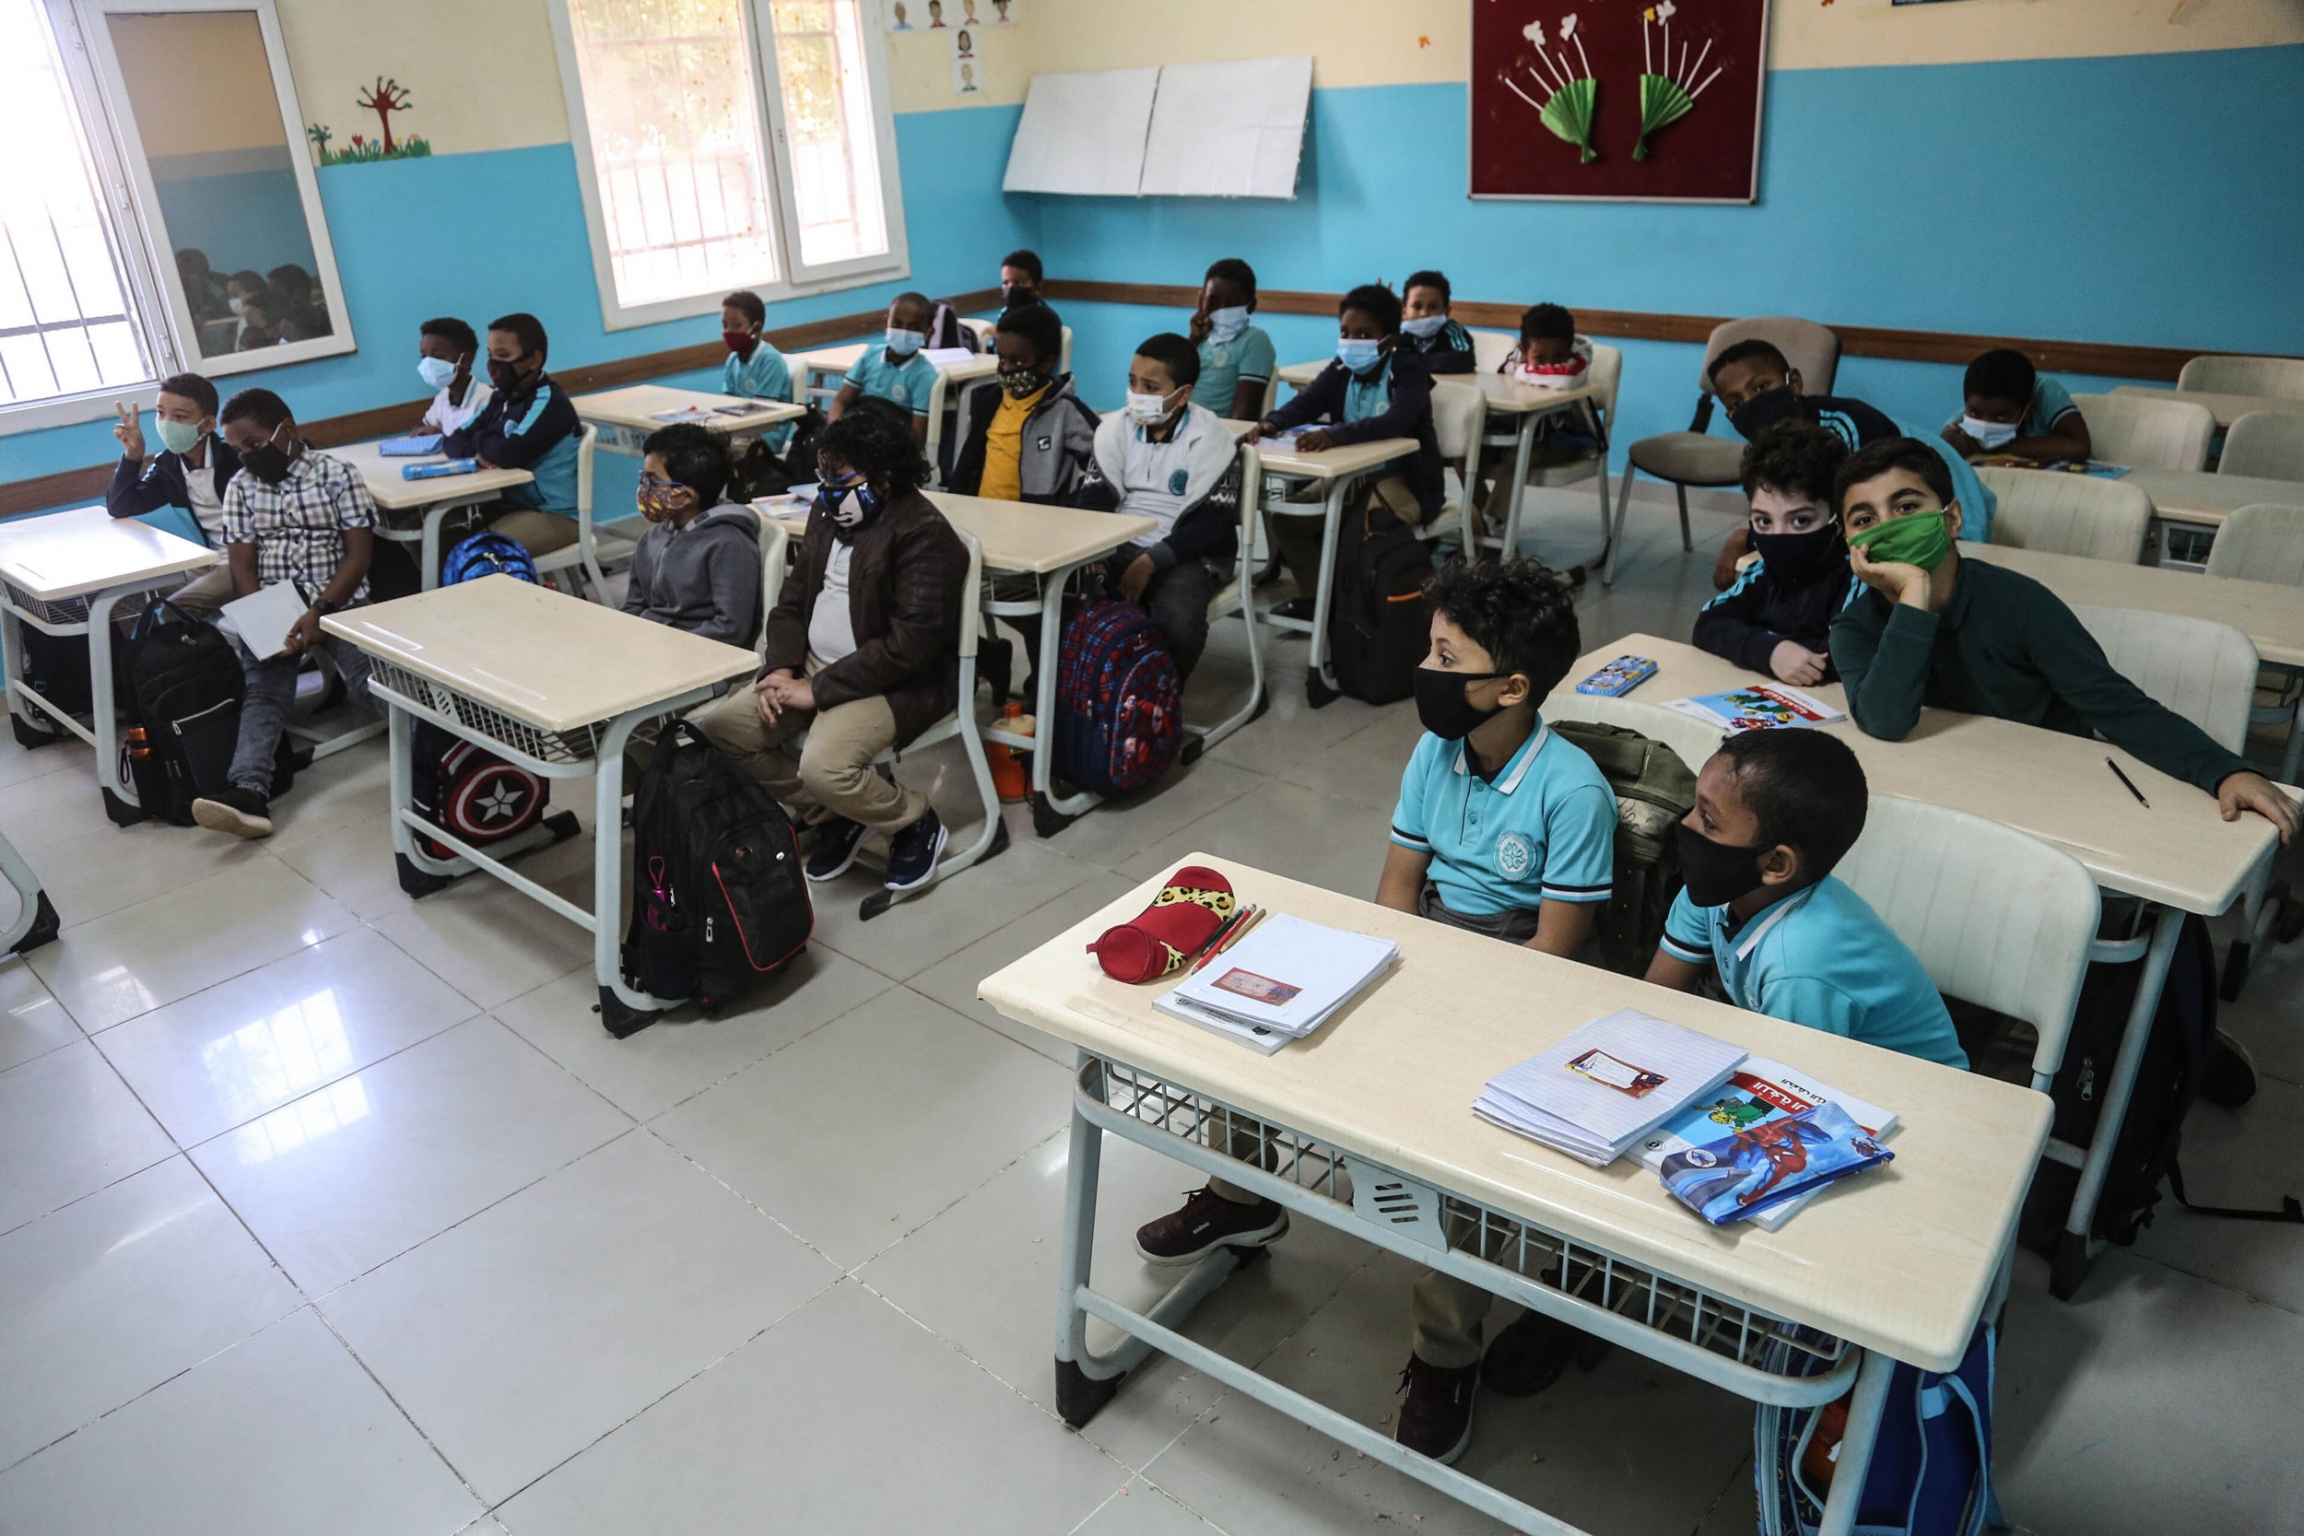 Three rows of desks are shown with two students sitting at each desk in a classroom with blue and white walls.